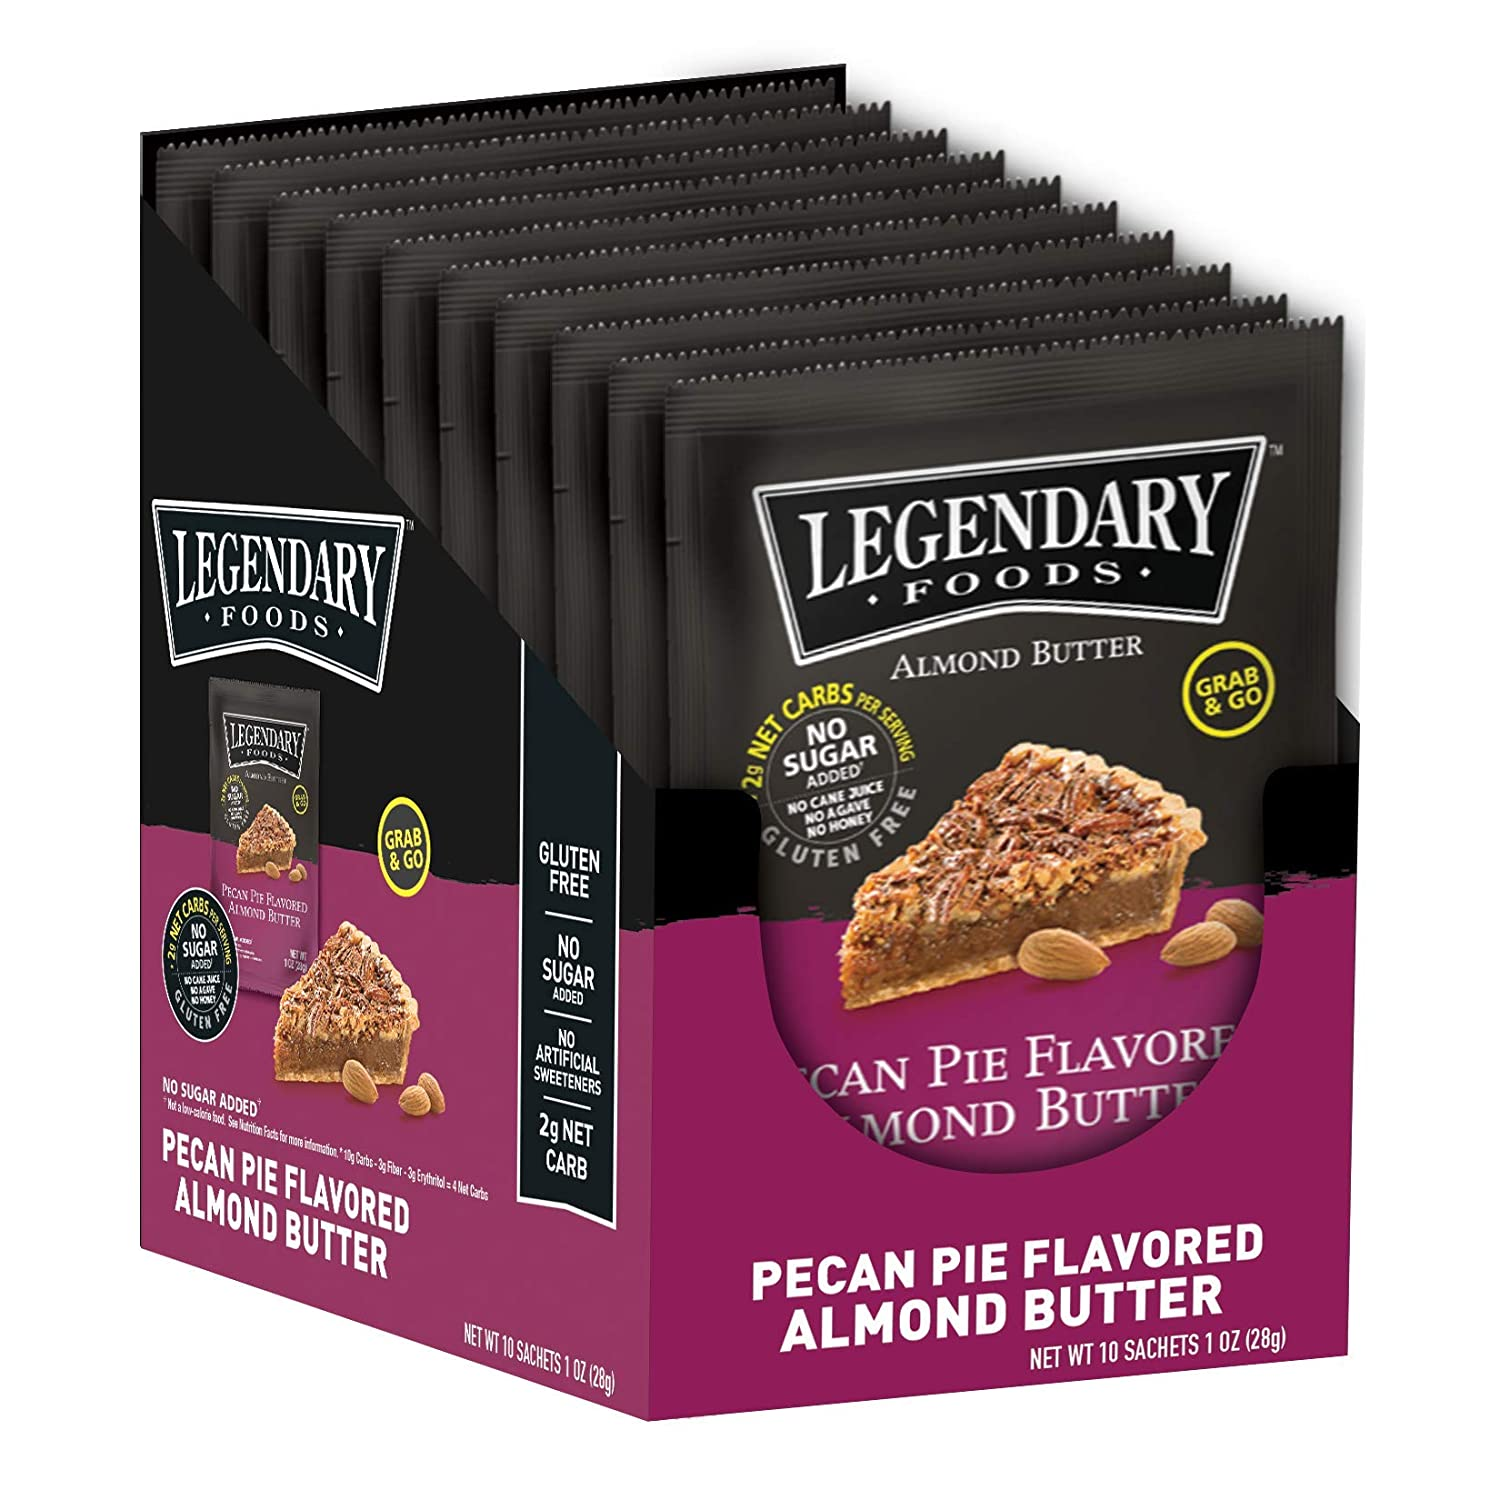 Legendary Foods Almond Butter | Keto Snacks & Fat Bombs, Low Carb, No Sugar Added, Vegan | Pecan Pie (1oz Squeeze Packets, Pack of 10)